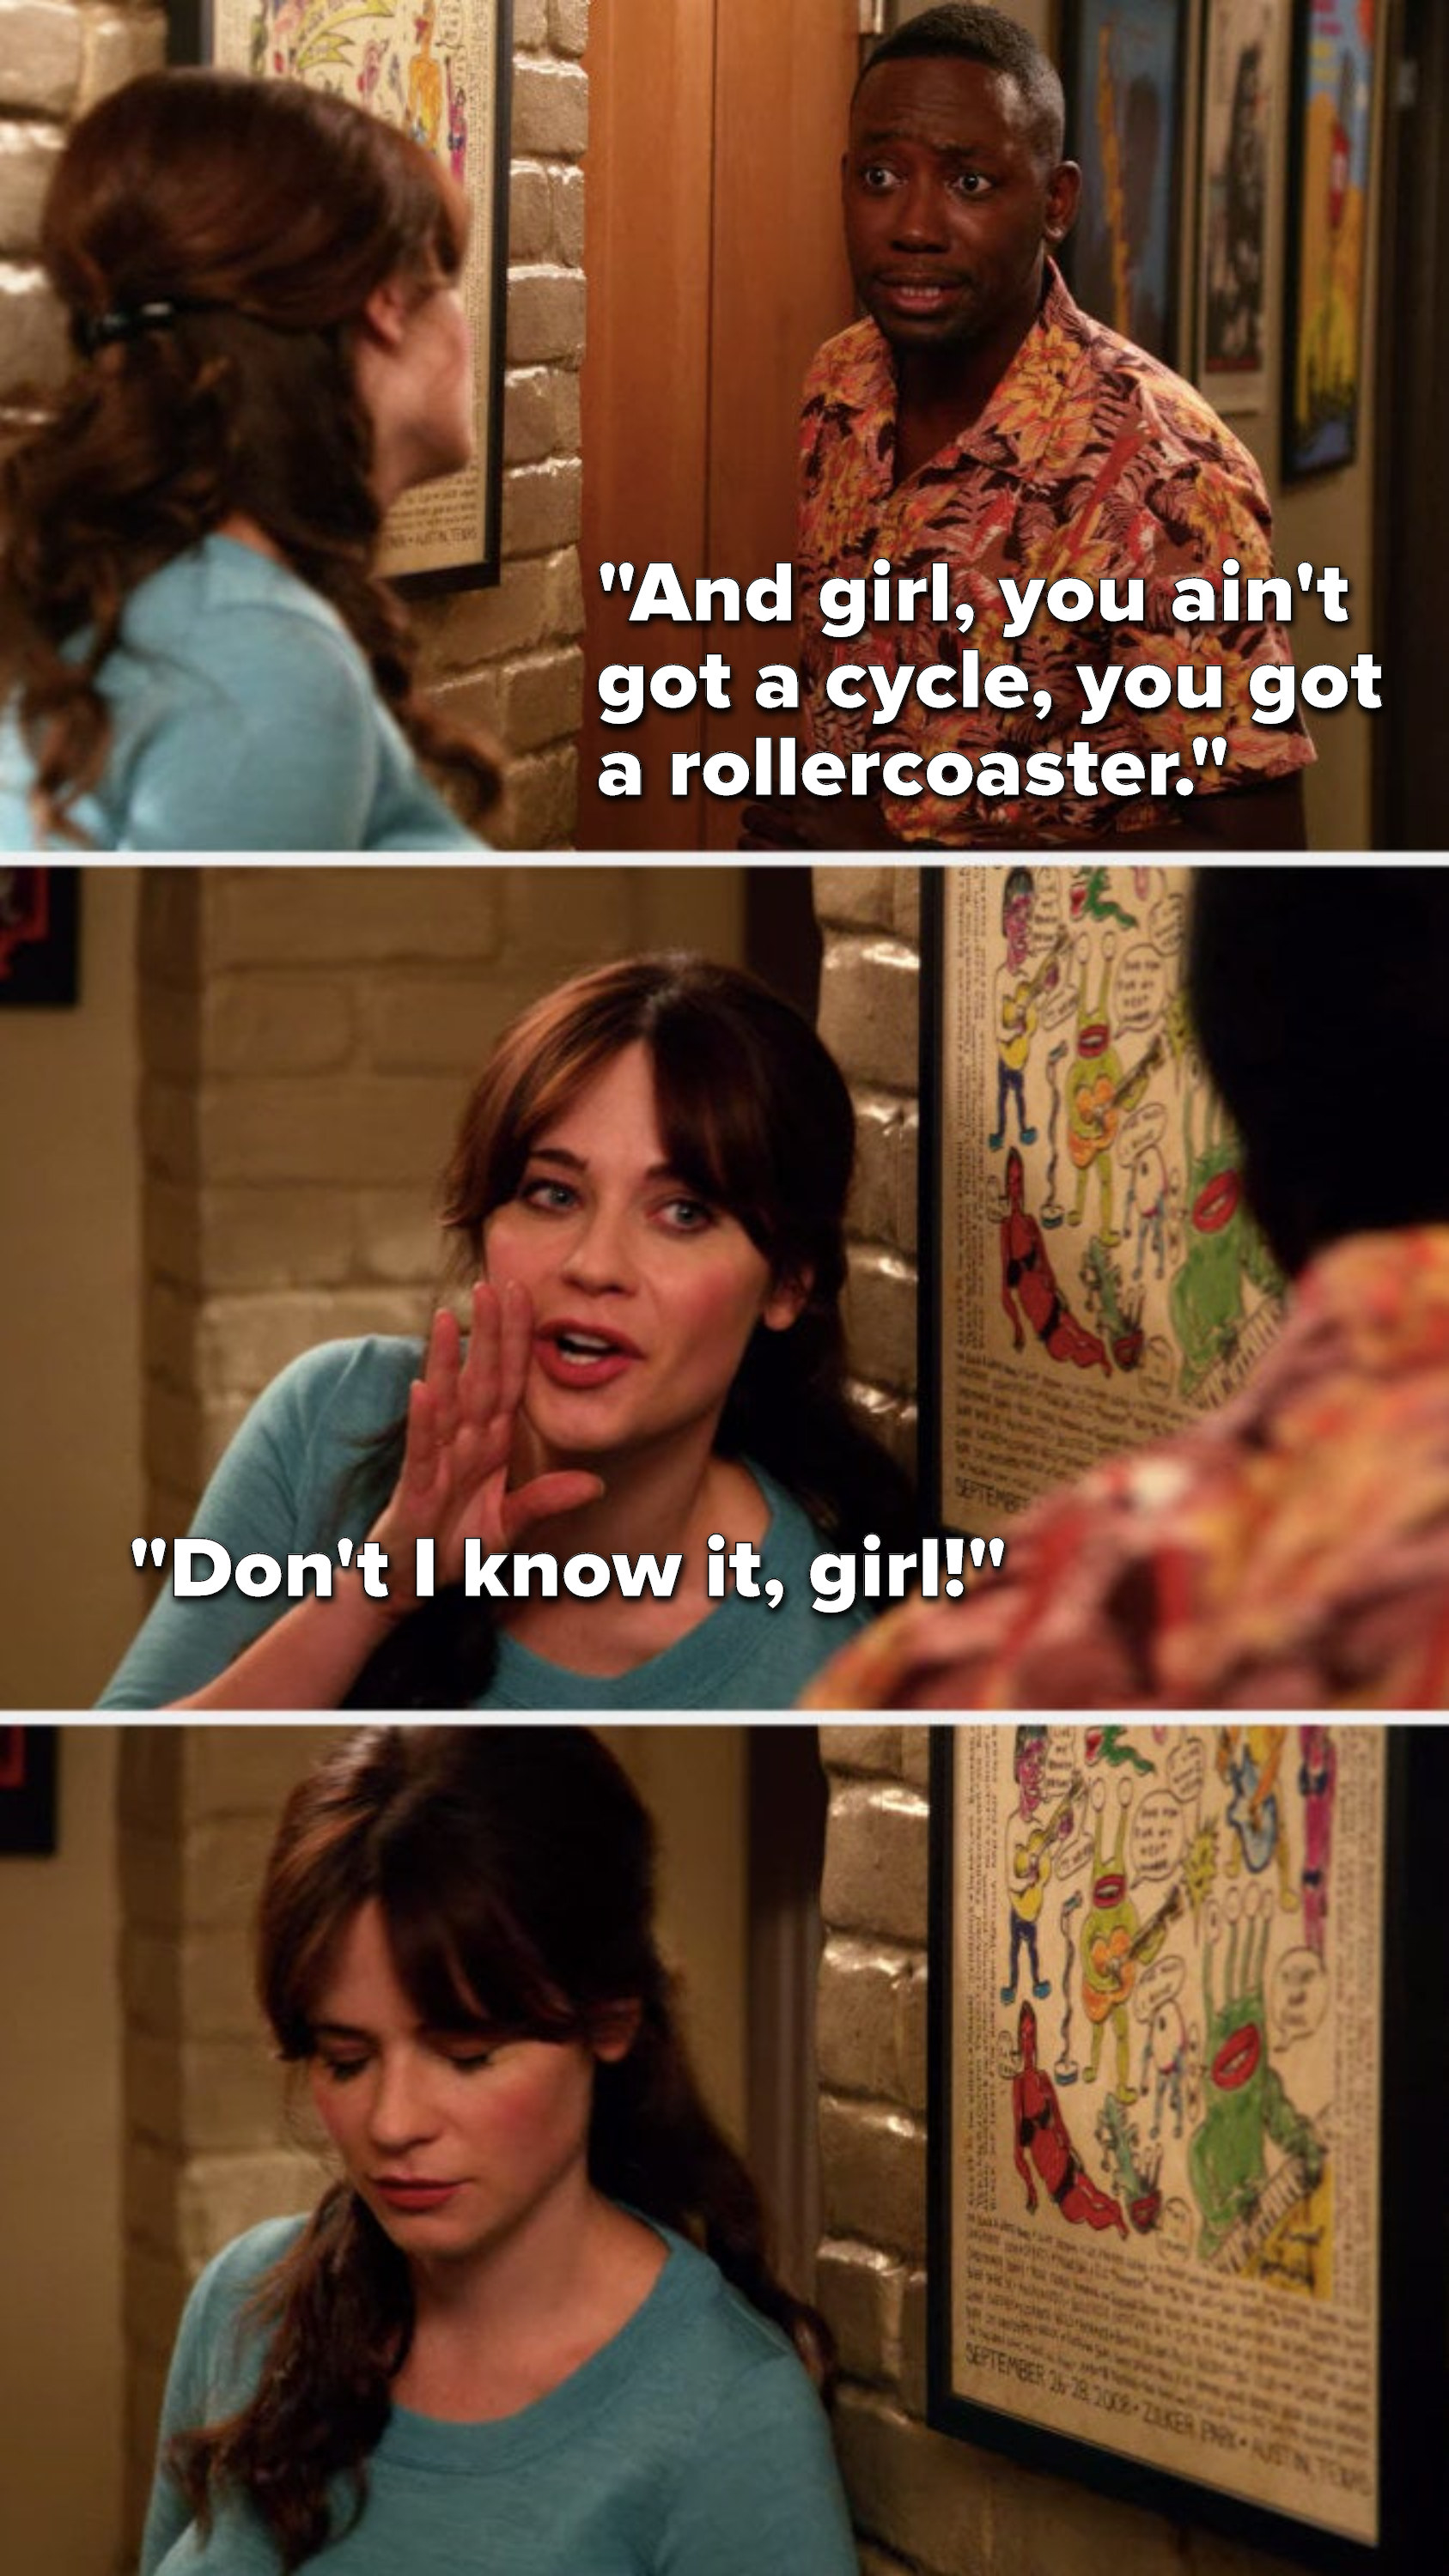 """Winston says, """"And girl, you ain't got a cycle, you got a rollercoaster,"""" Jess says, """"Don't I know it, girl"""" and then looks down in shame"""